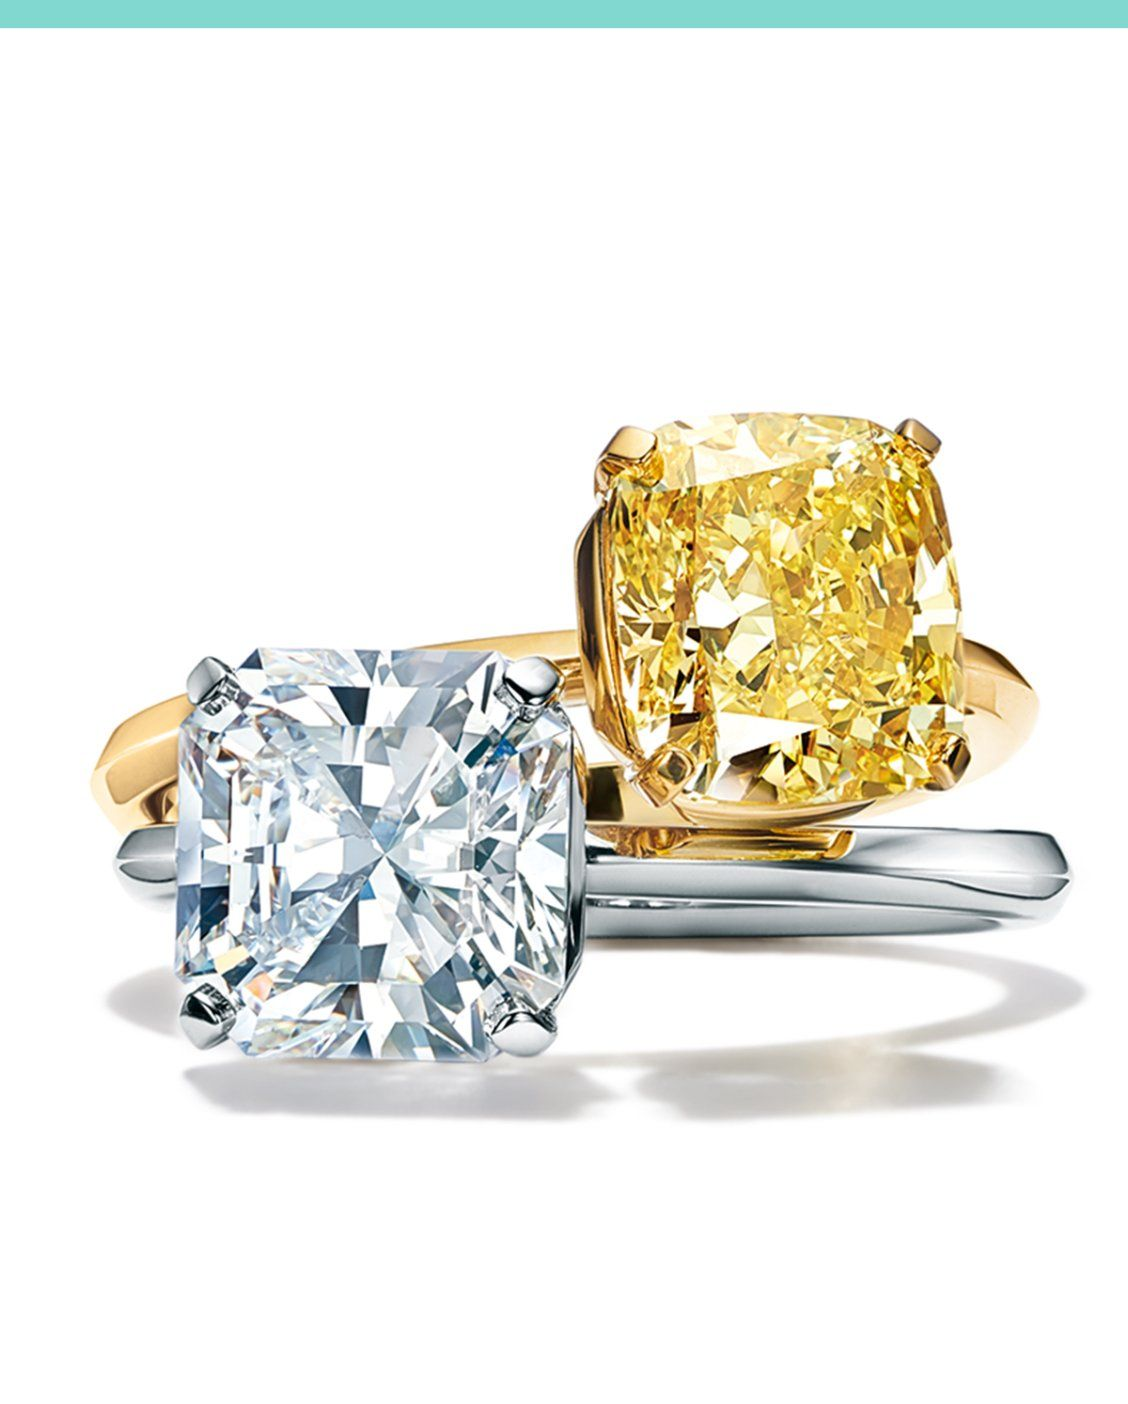 010f44a5f At Tiffany, we responsibly source our diamonds; and integrity and social  responsibility are at the core of our sourcing practices.